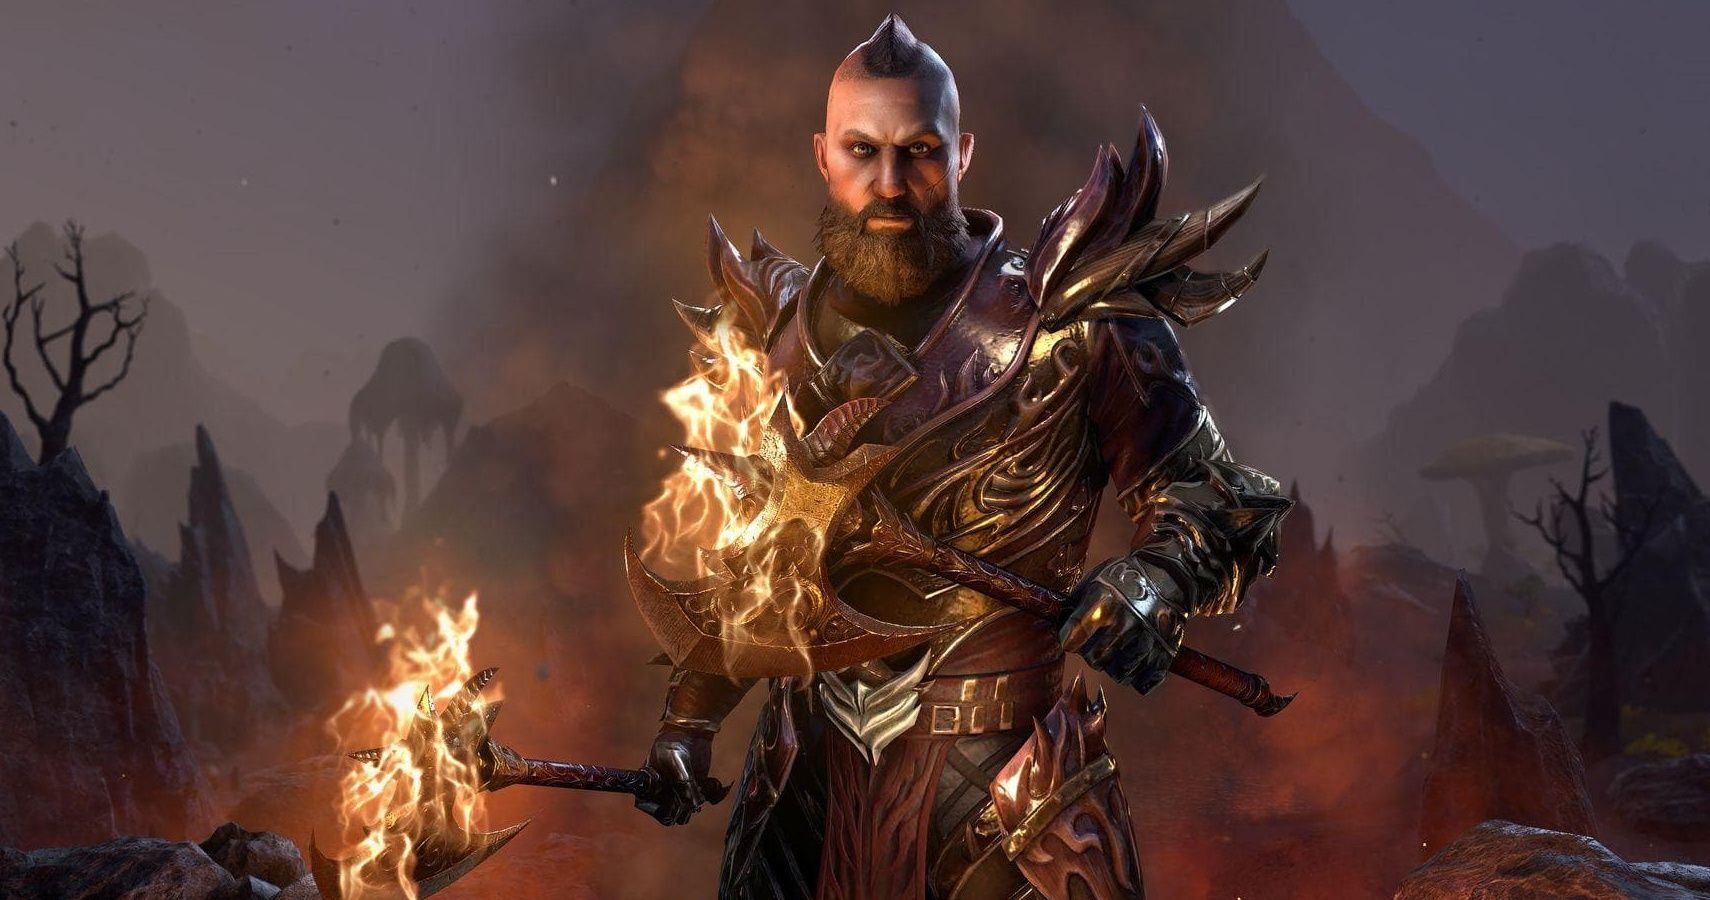 Elder Scrolls Online 10 Best Dragon Knight Builds Ranked For 2020